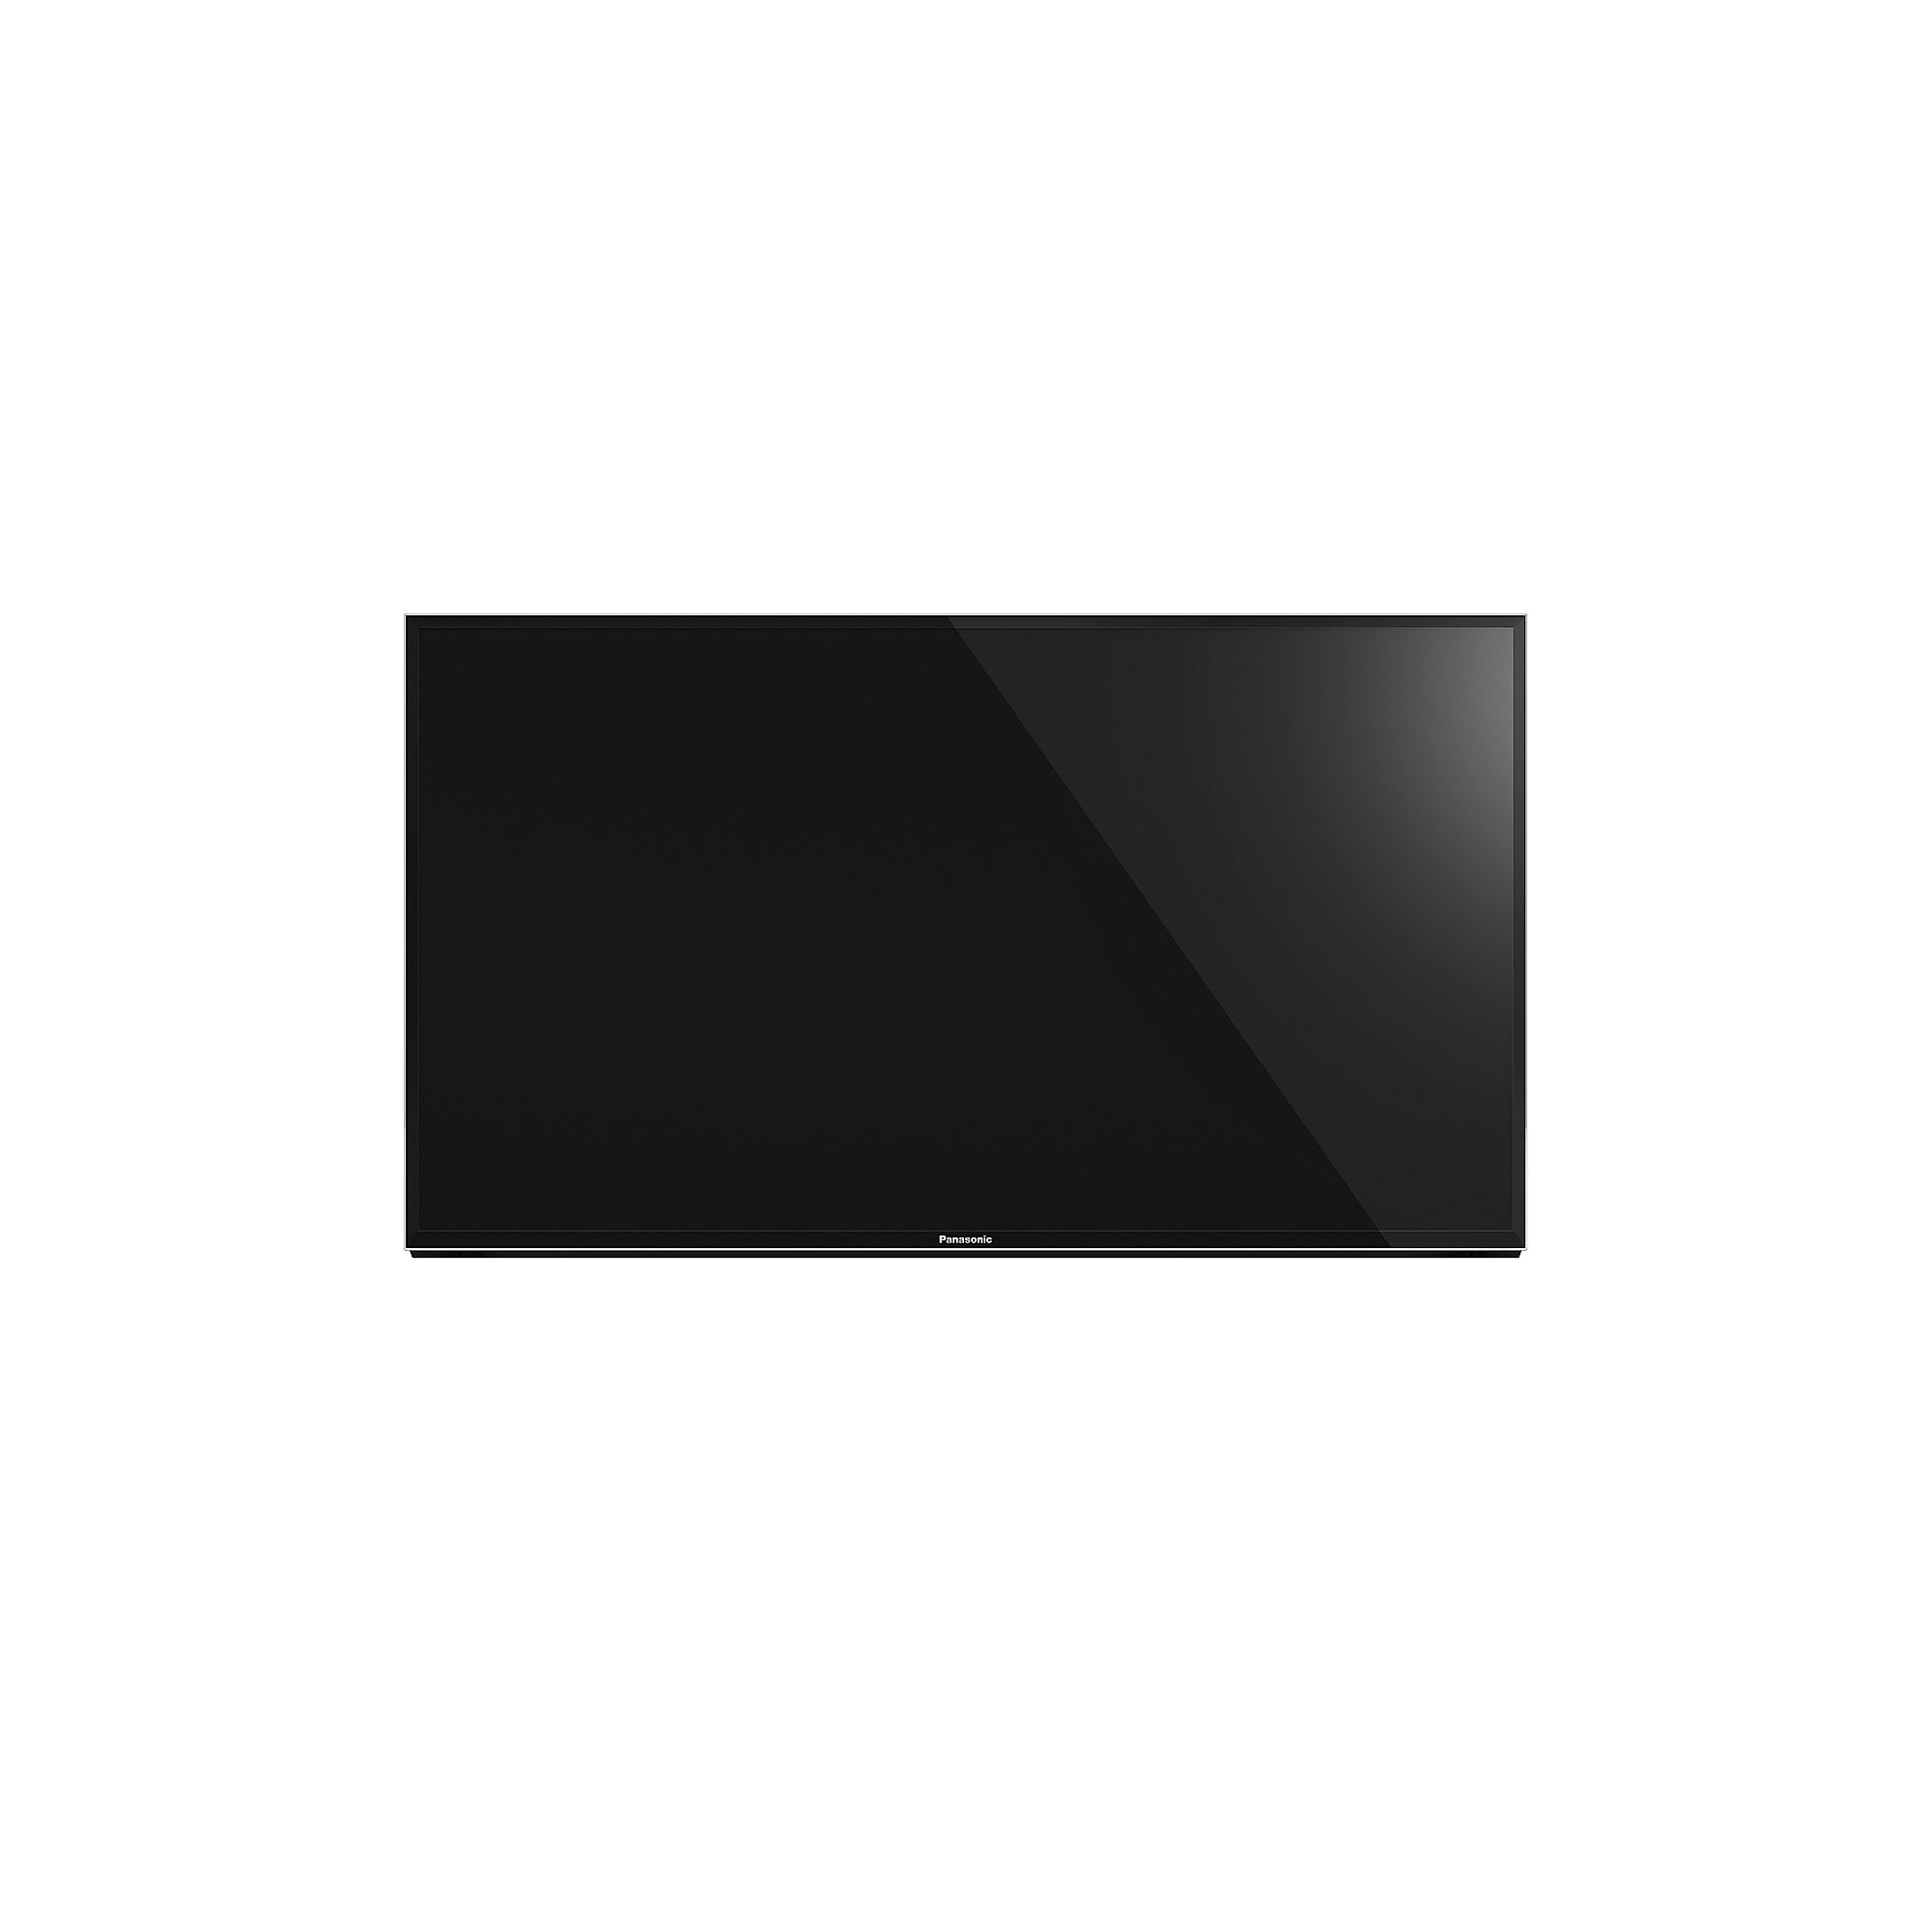 "Panasonic TX-65EXW604 164cm 65"" UHD HDR DVB-T2HD/S/C IPTV Smart TV"